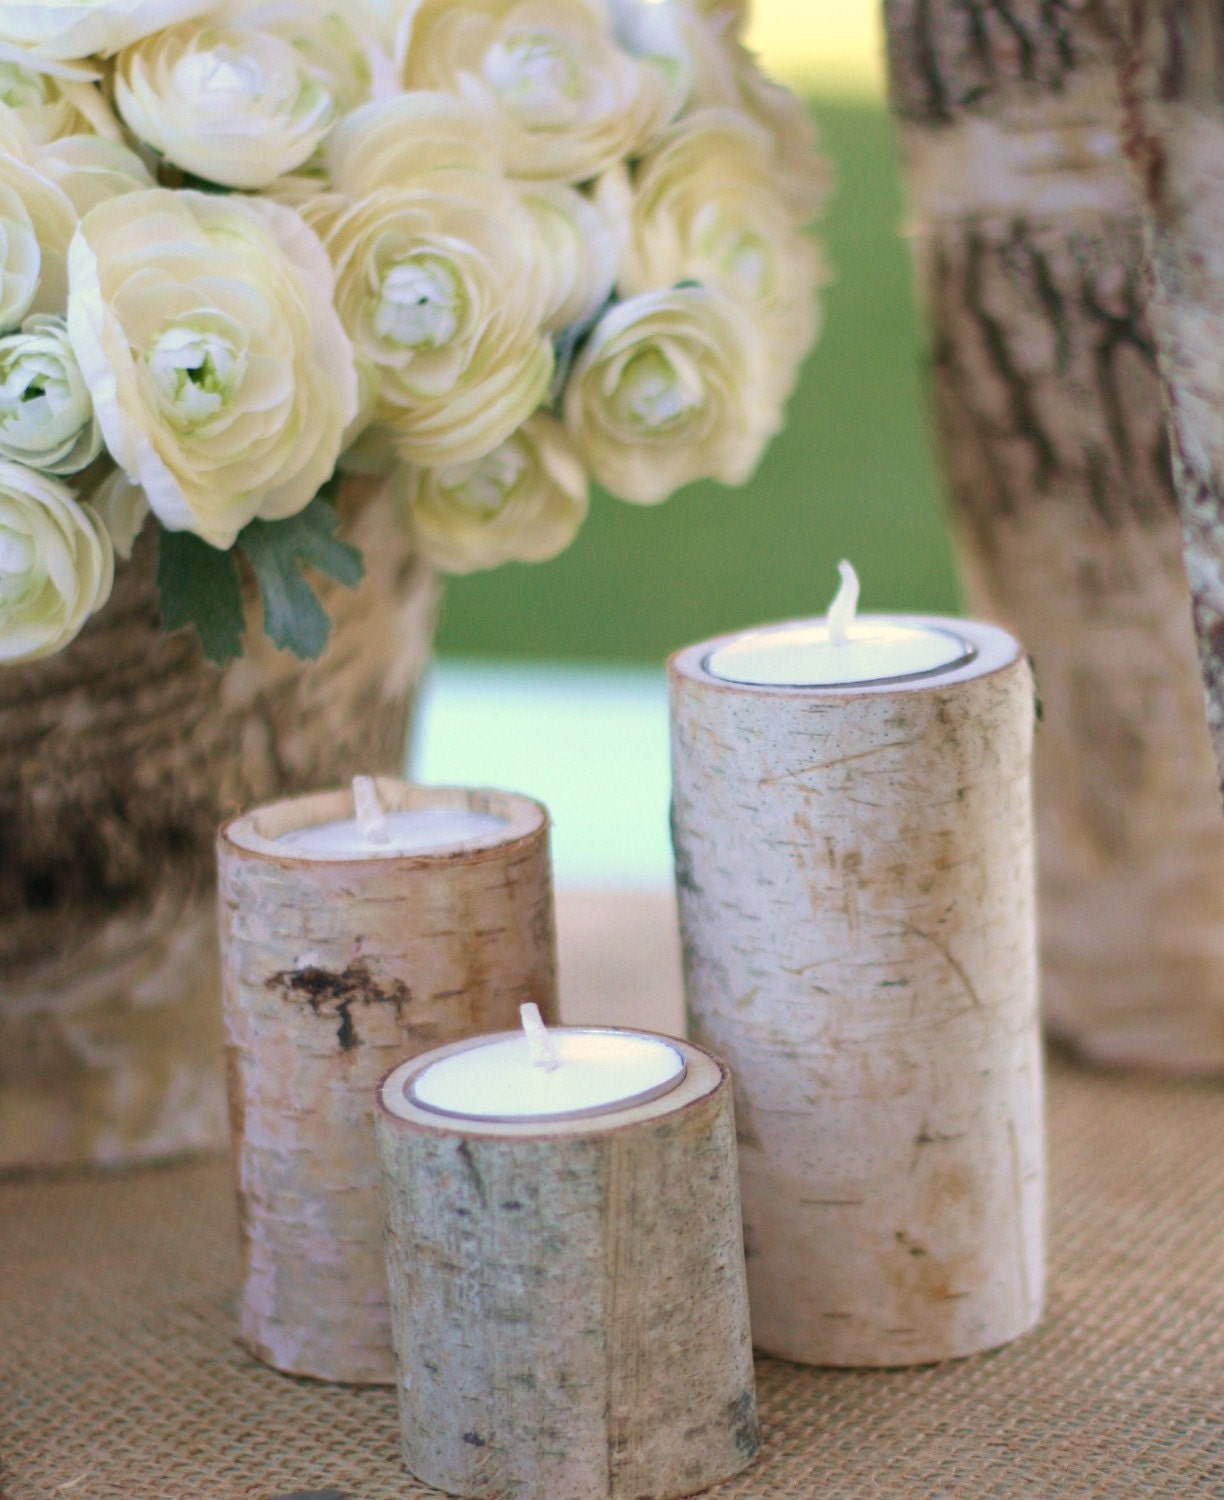 Wedding wednesday etsy finds eclectic vintage items from